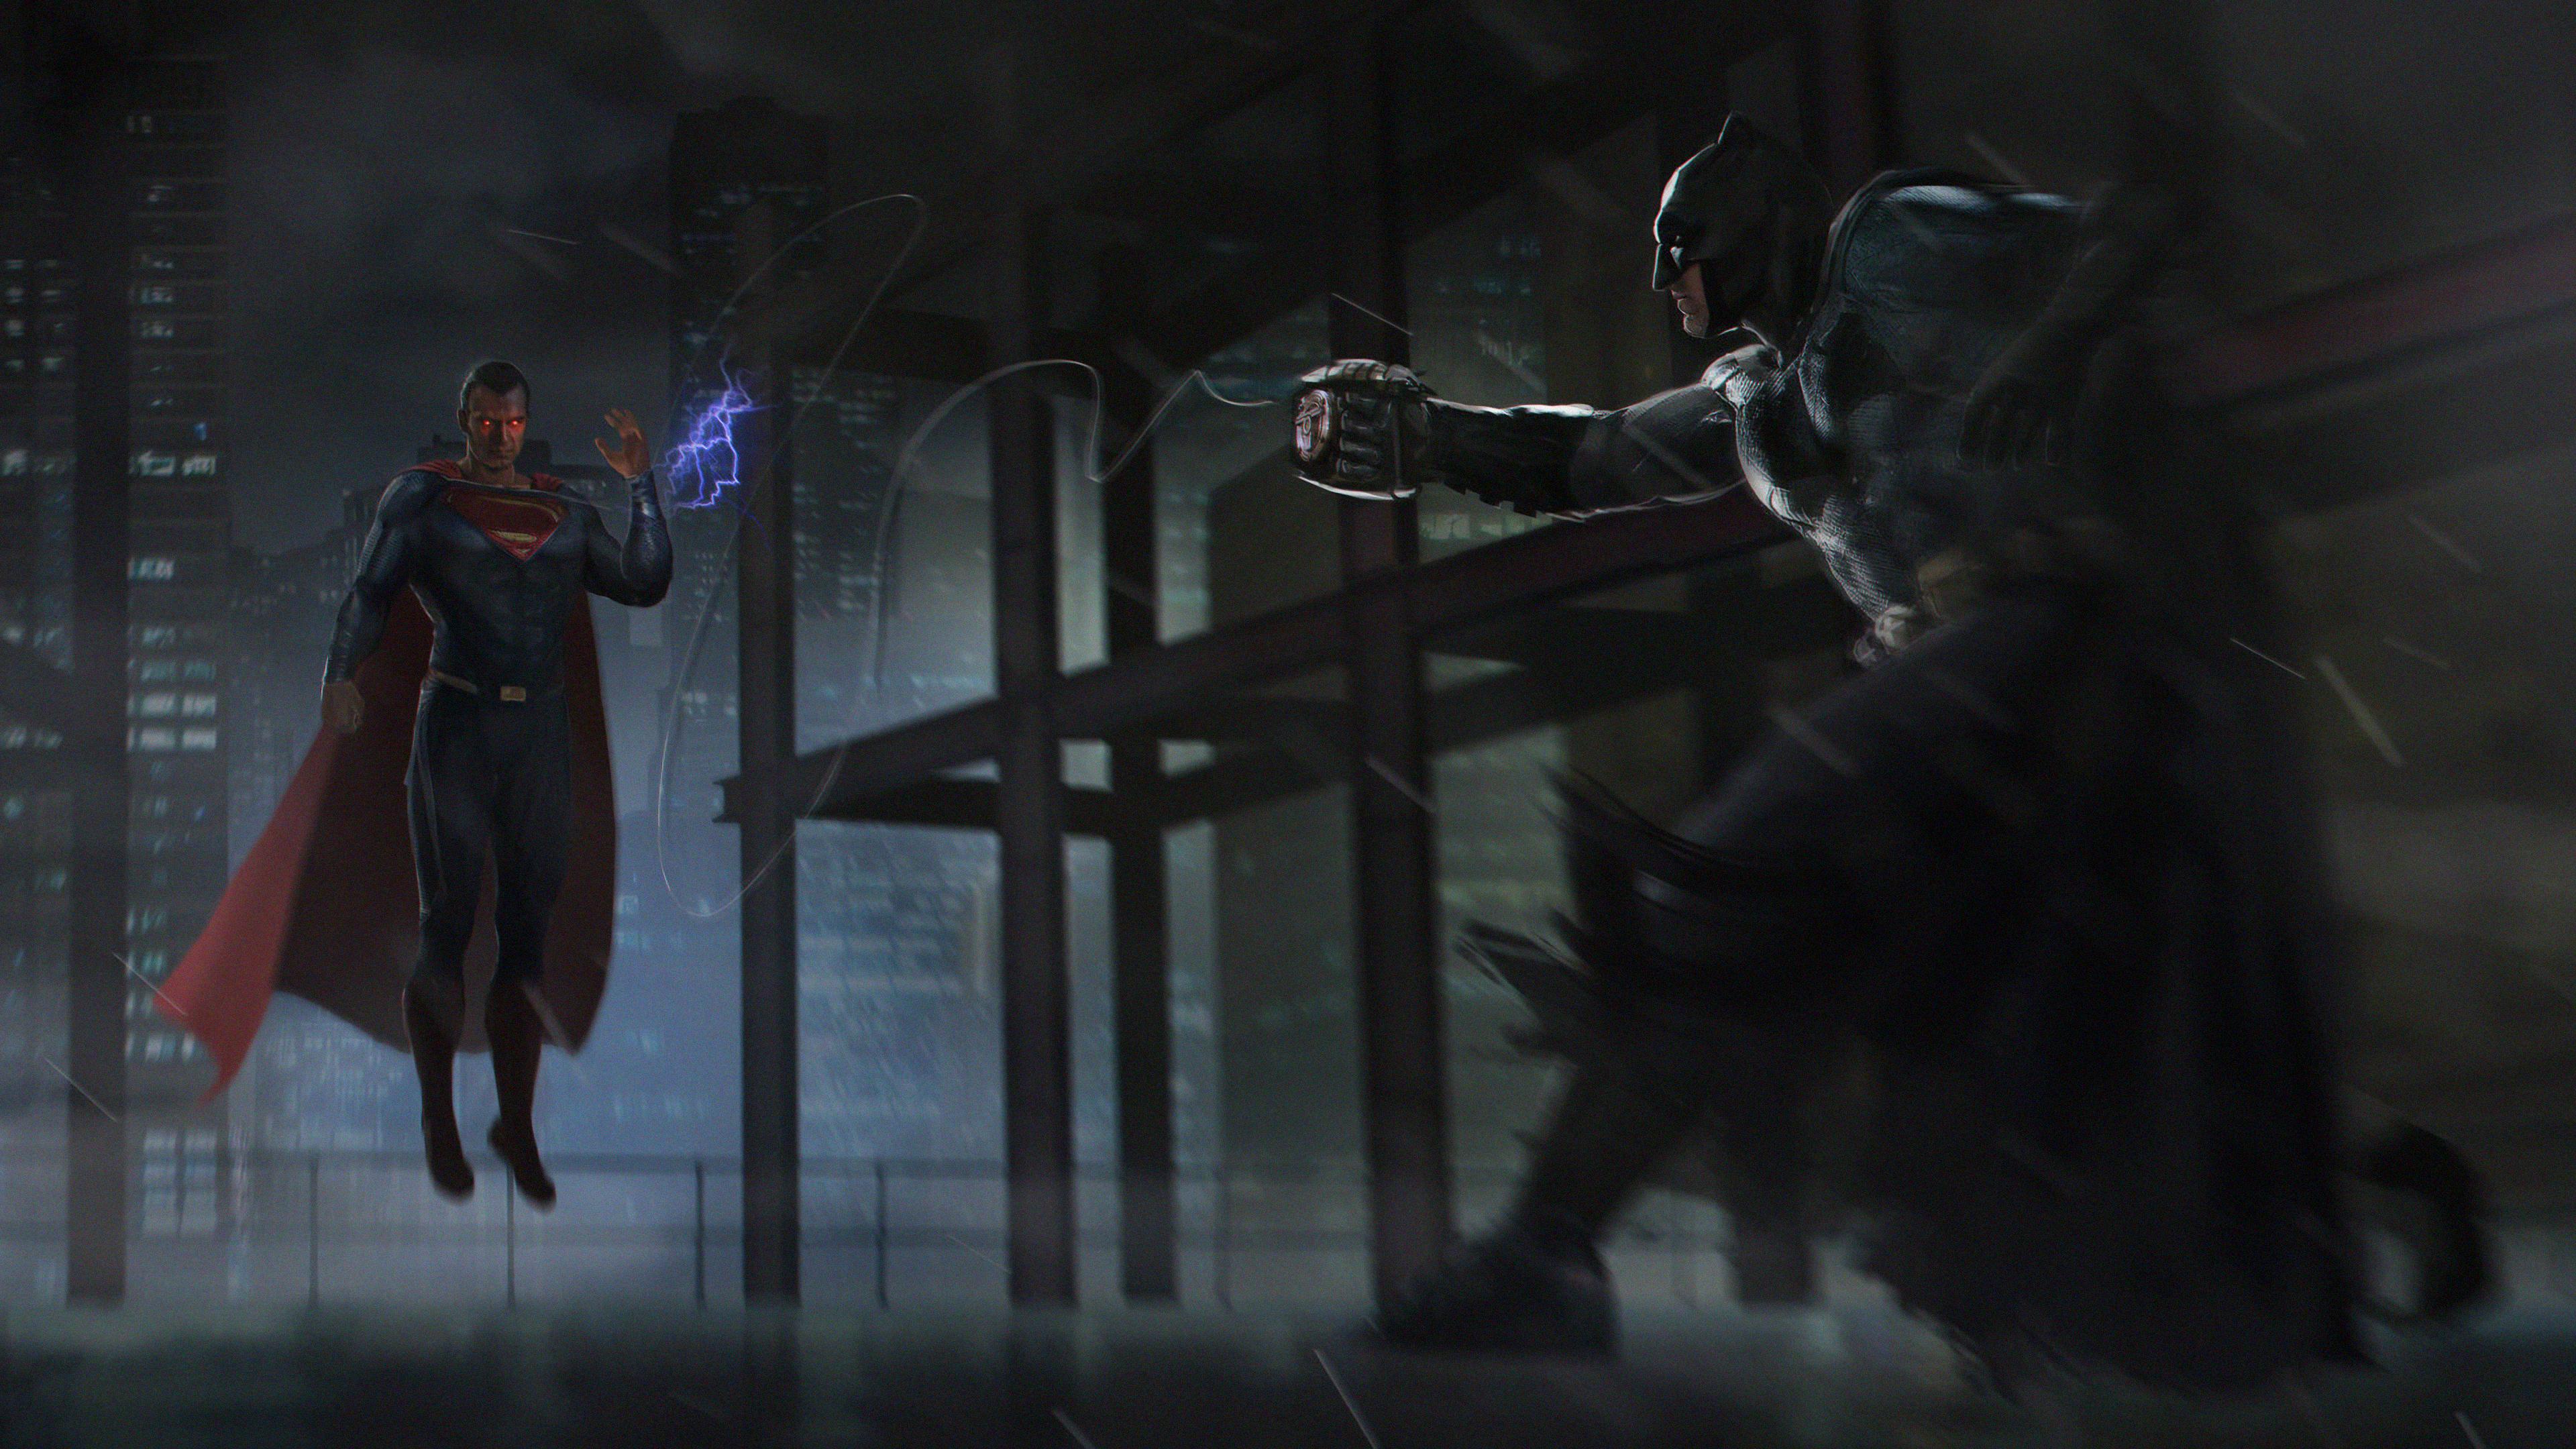 Batman Vs Superman Fight Fan Art 4k Hd Superheroes 4k